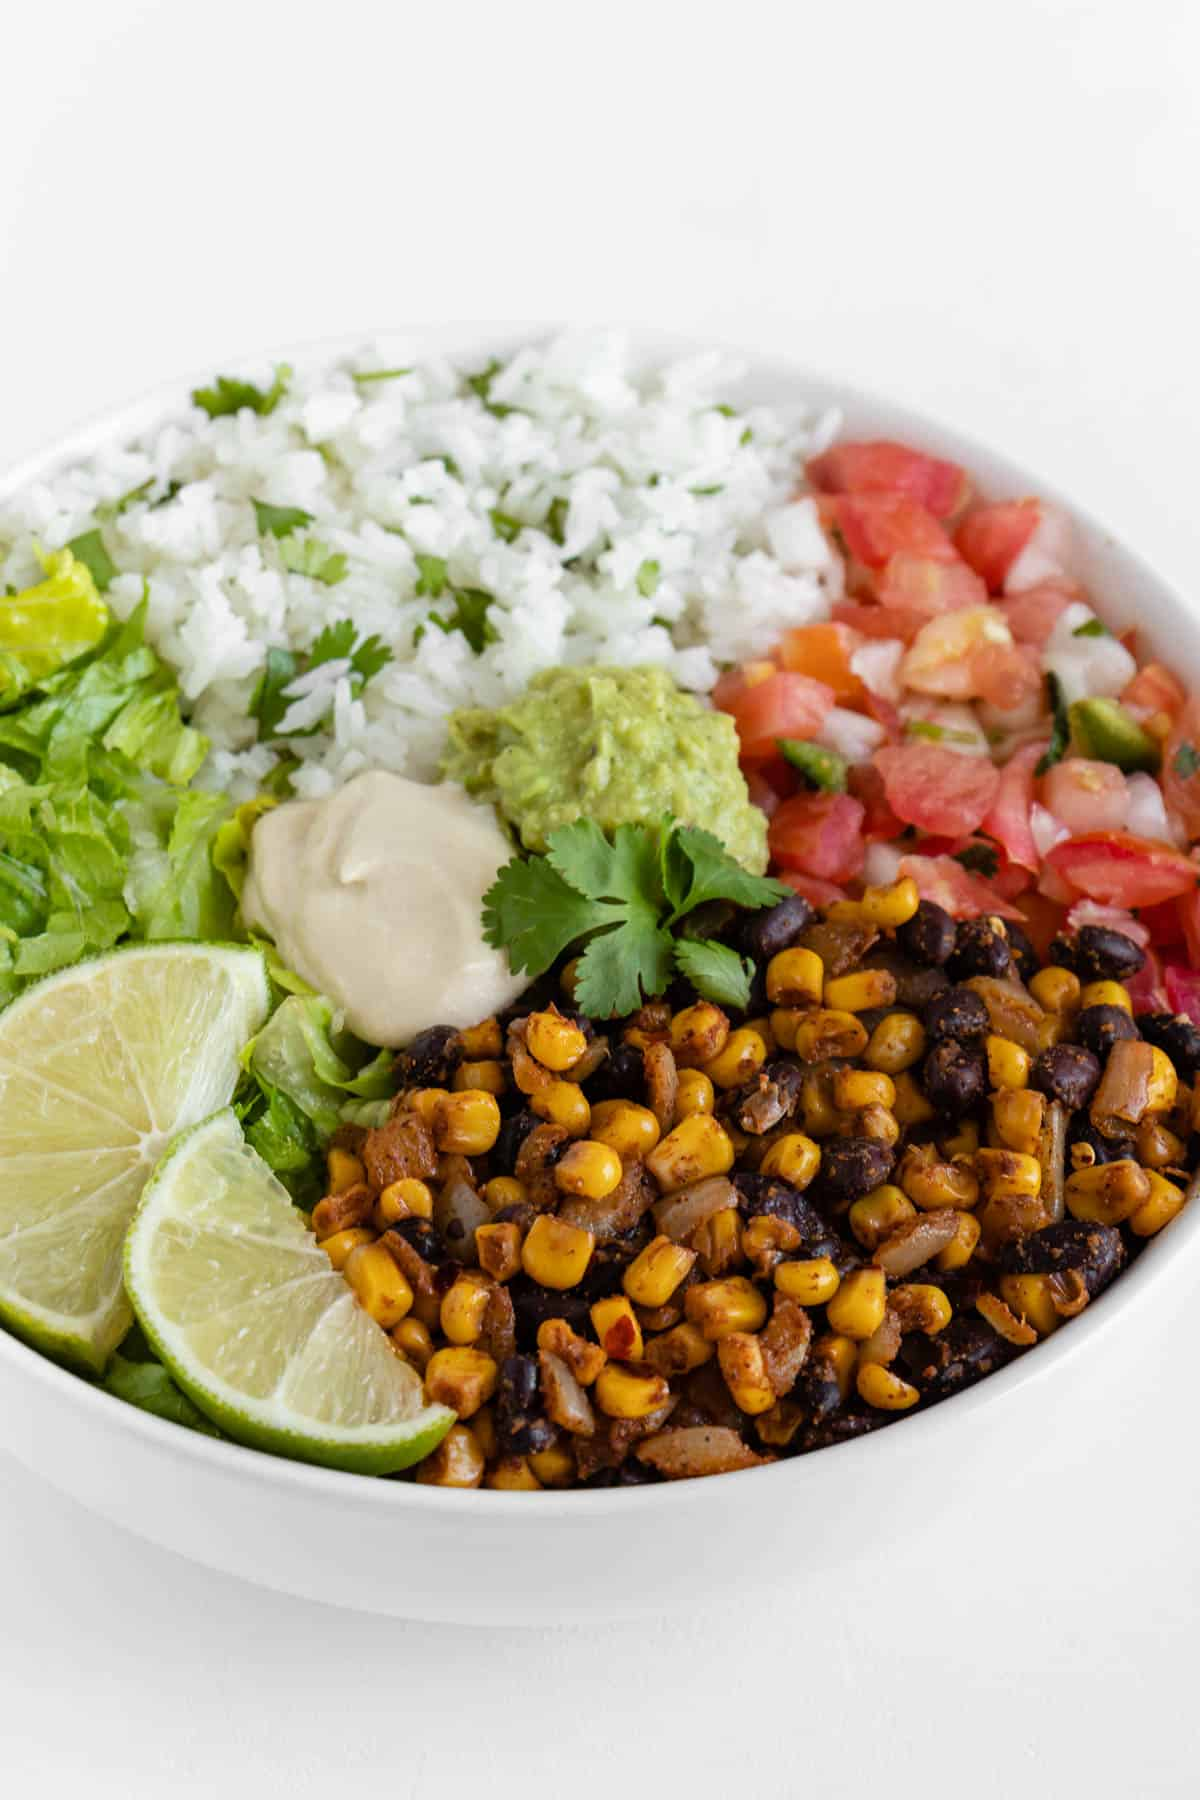 a vegan burrito bowl with cilantro lime rice, corn and beans, pico de gallo, guacamole, and romaine lettuce